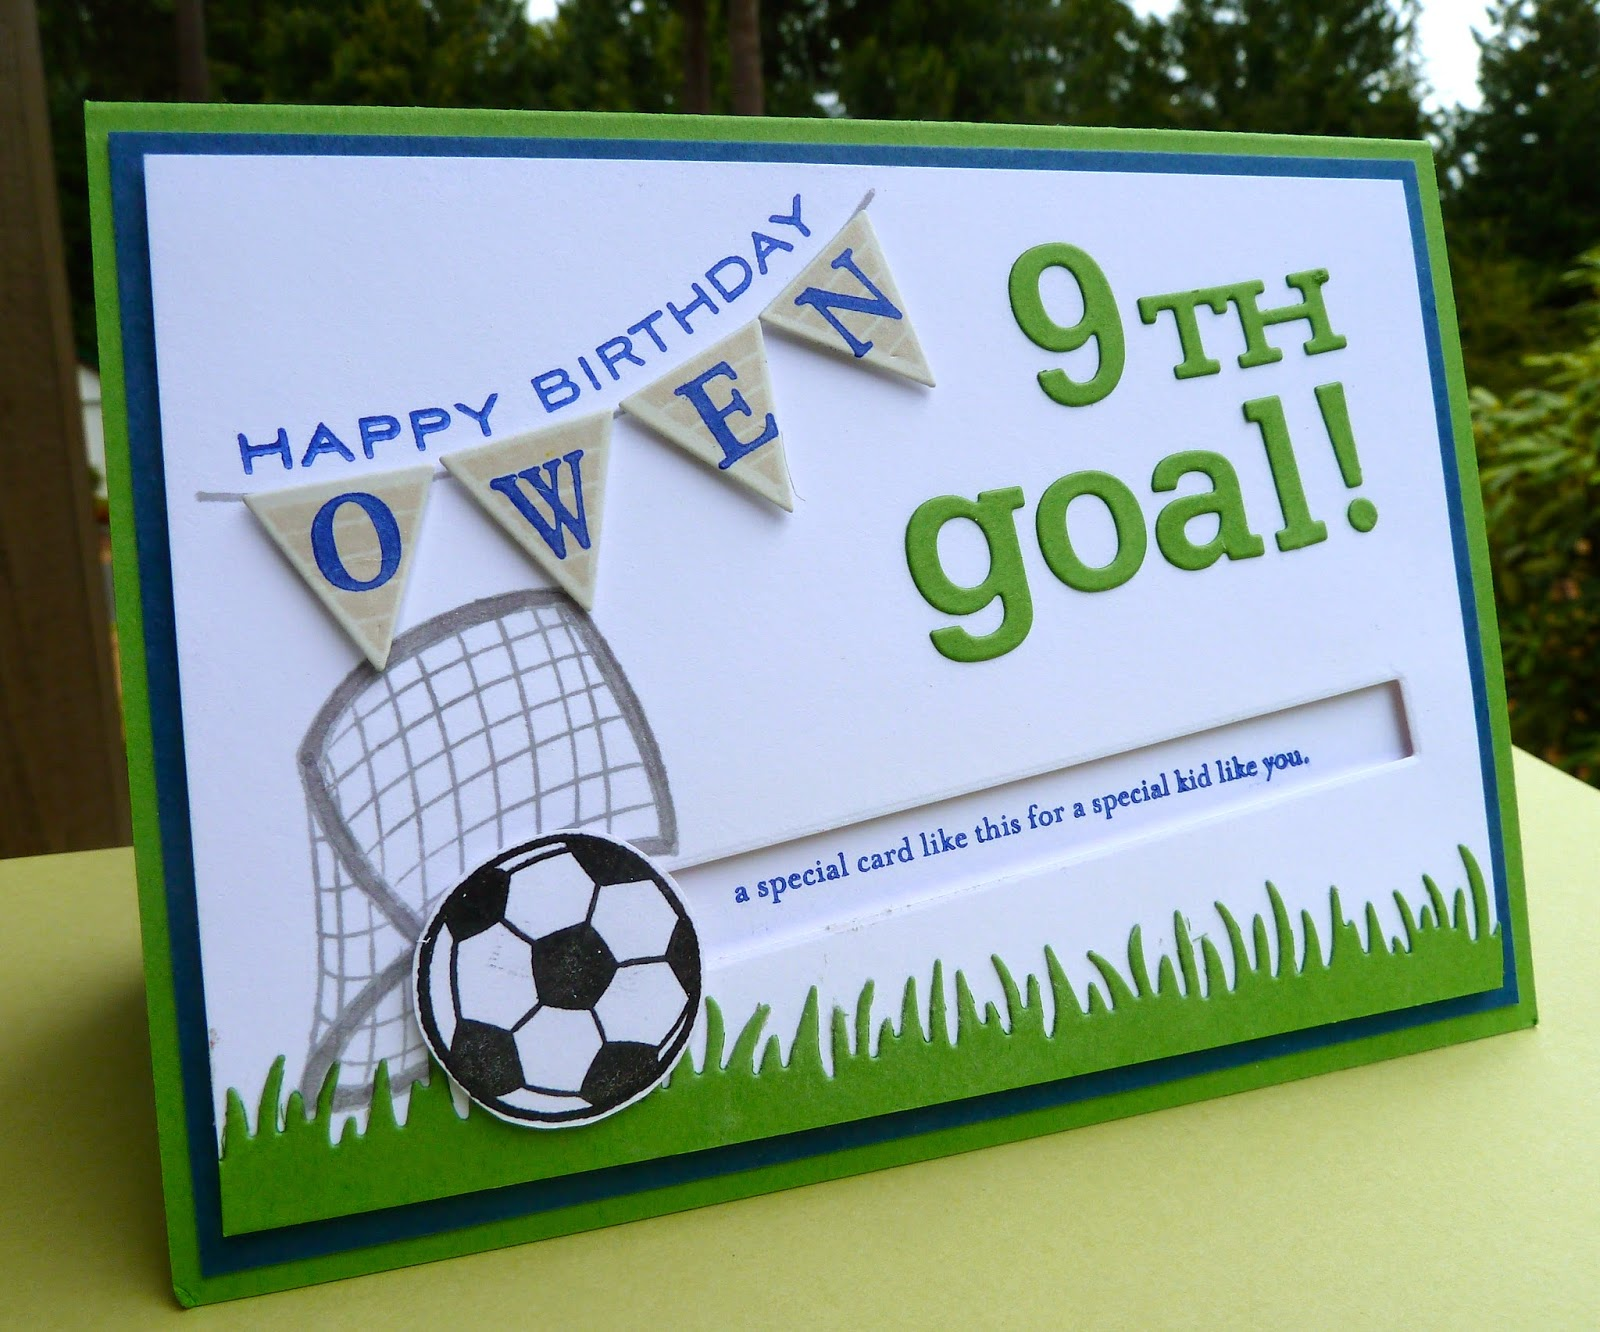 freshwater stamps goal birthday card for soccer fan